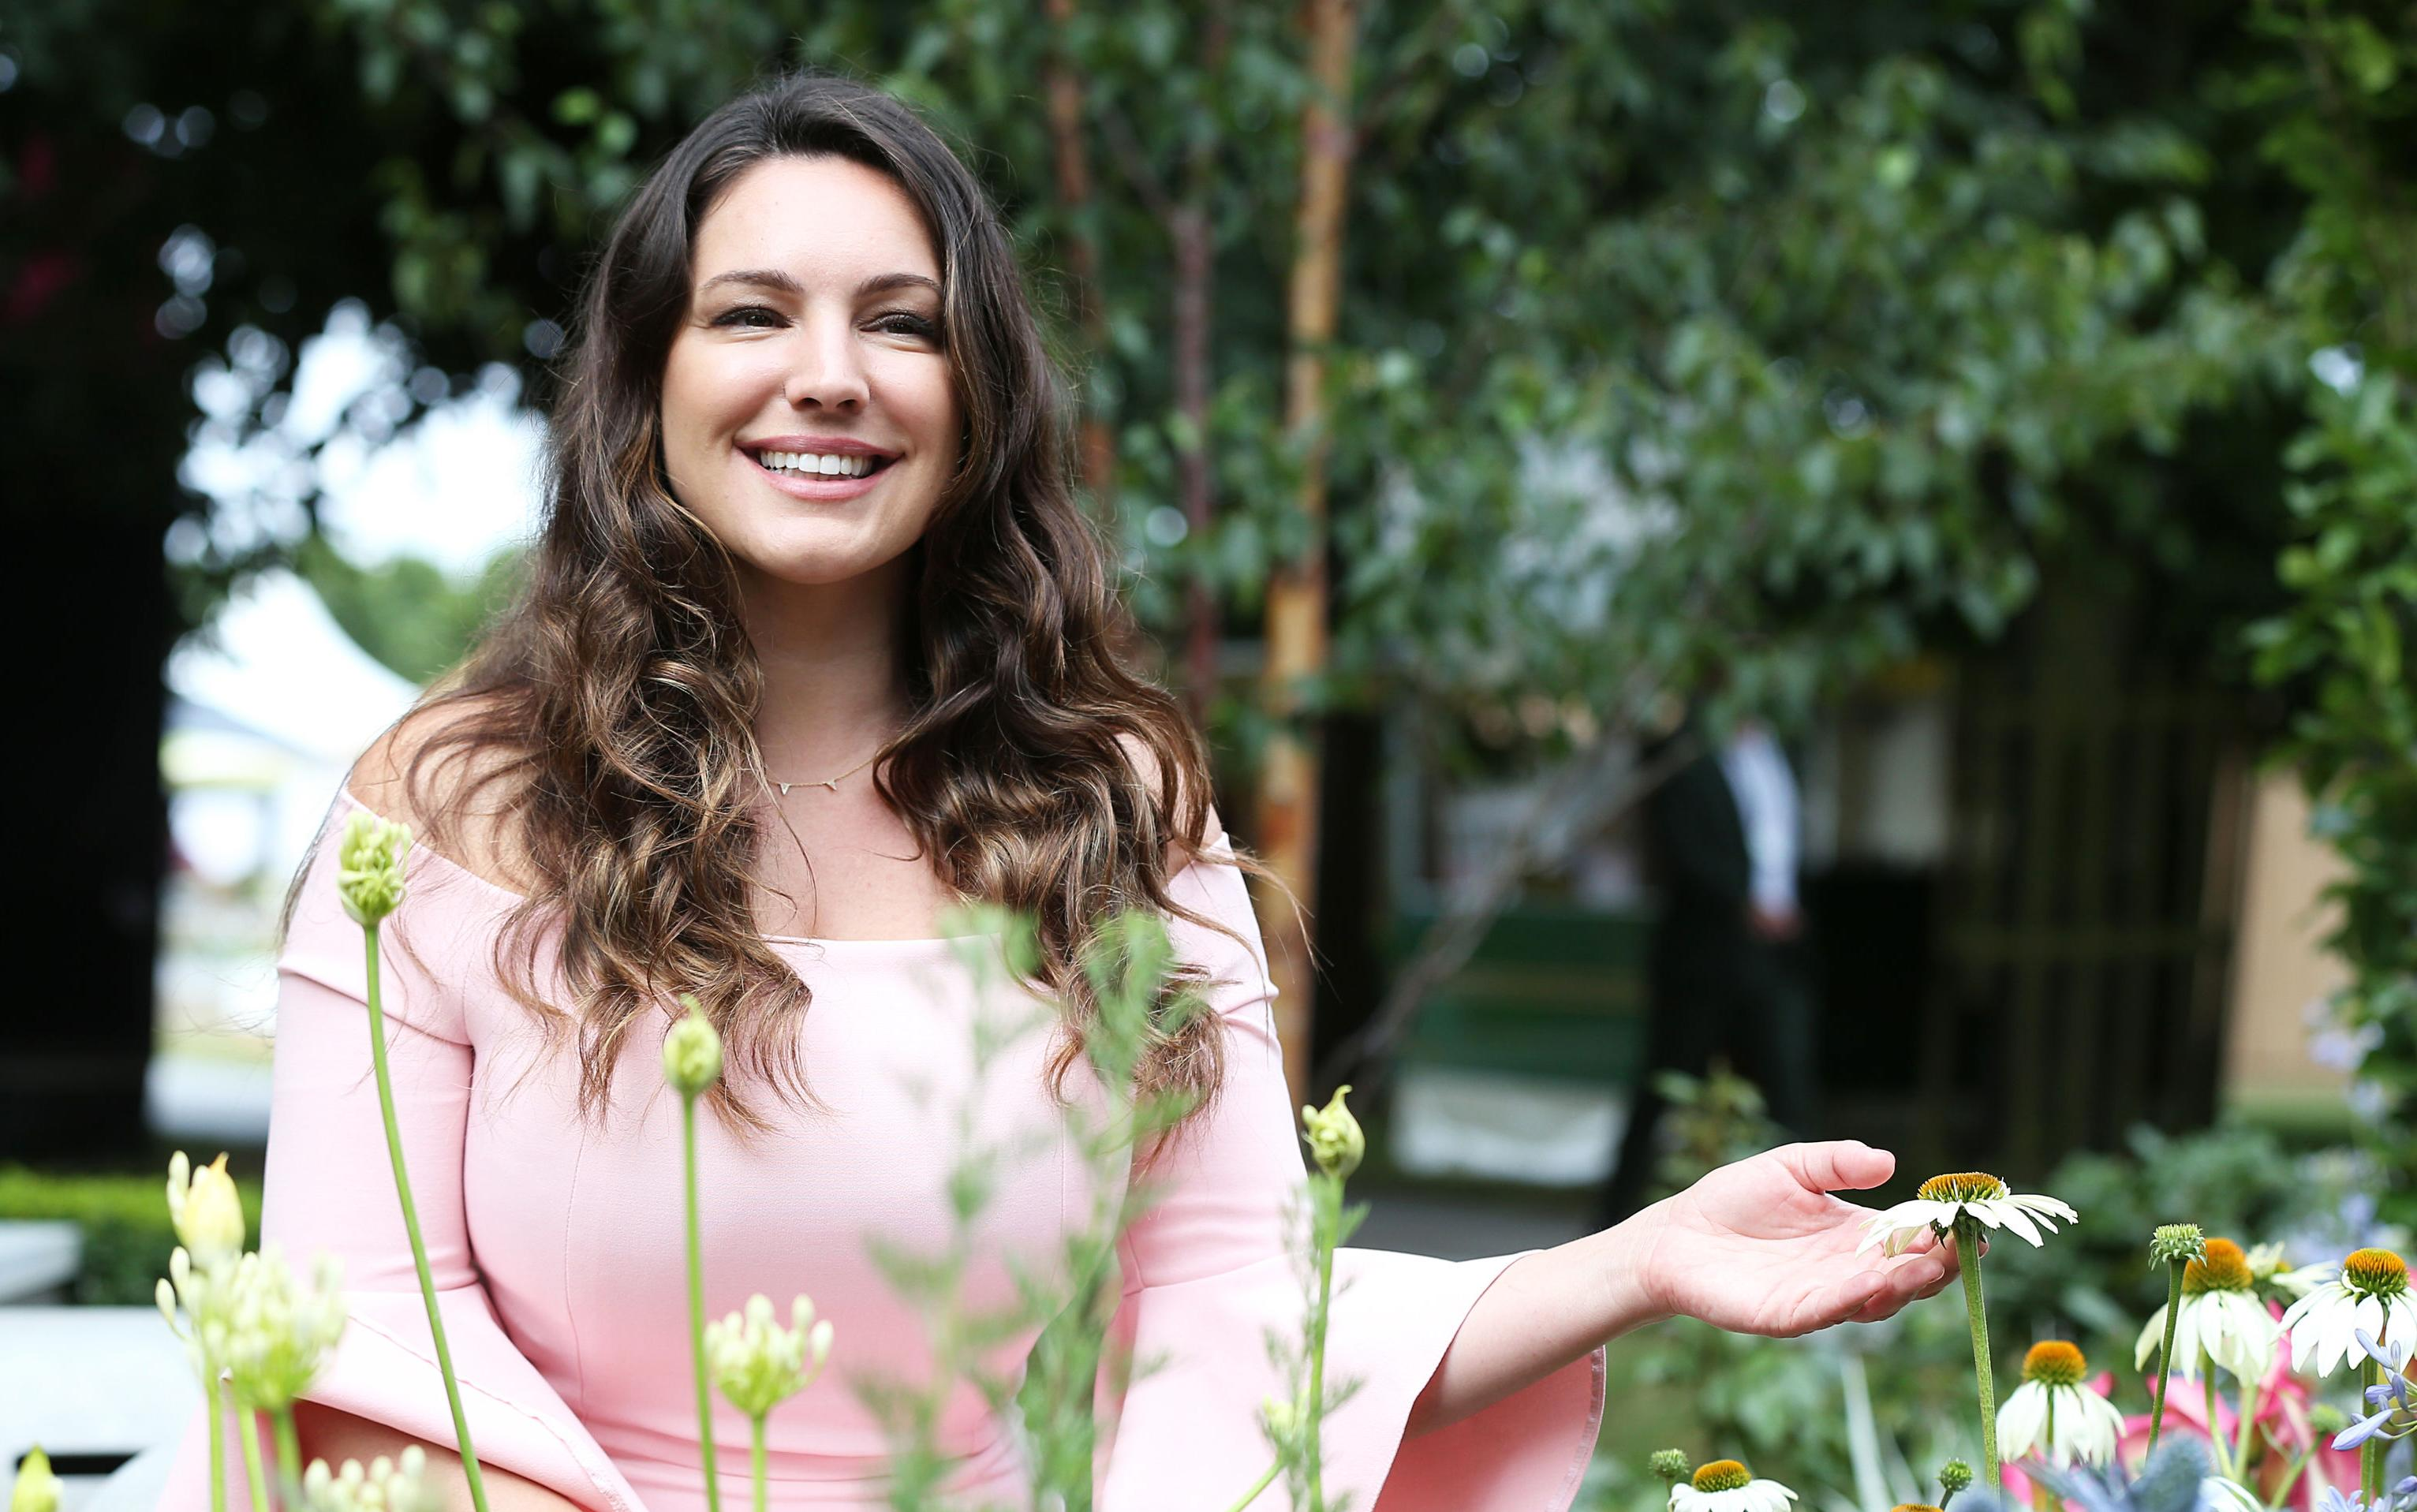 Response to a twitter troll who shamed her for not wearing makeup - Kelly Brook Fires Back At Fat Shaming Trolls Who Attacked Her Bikini Photo